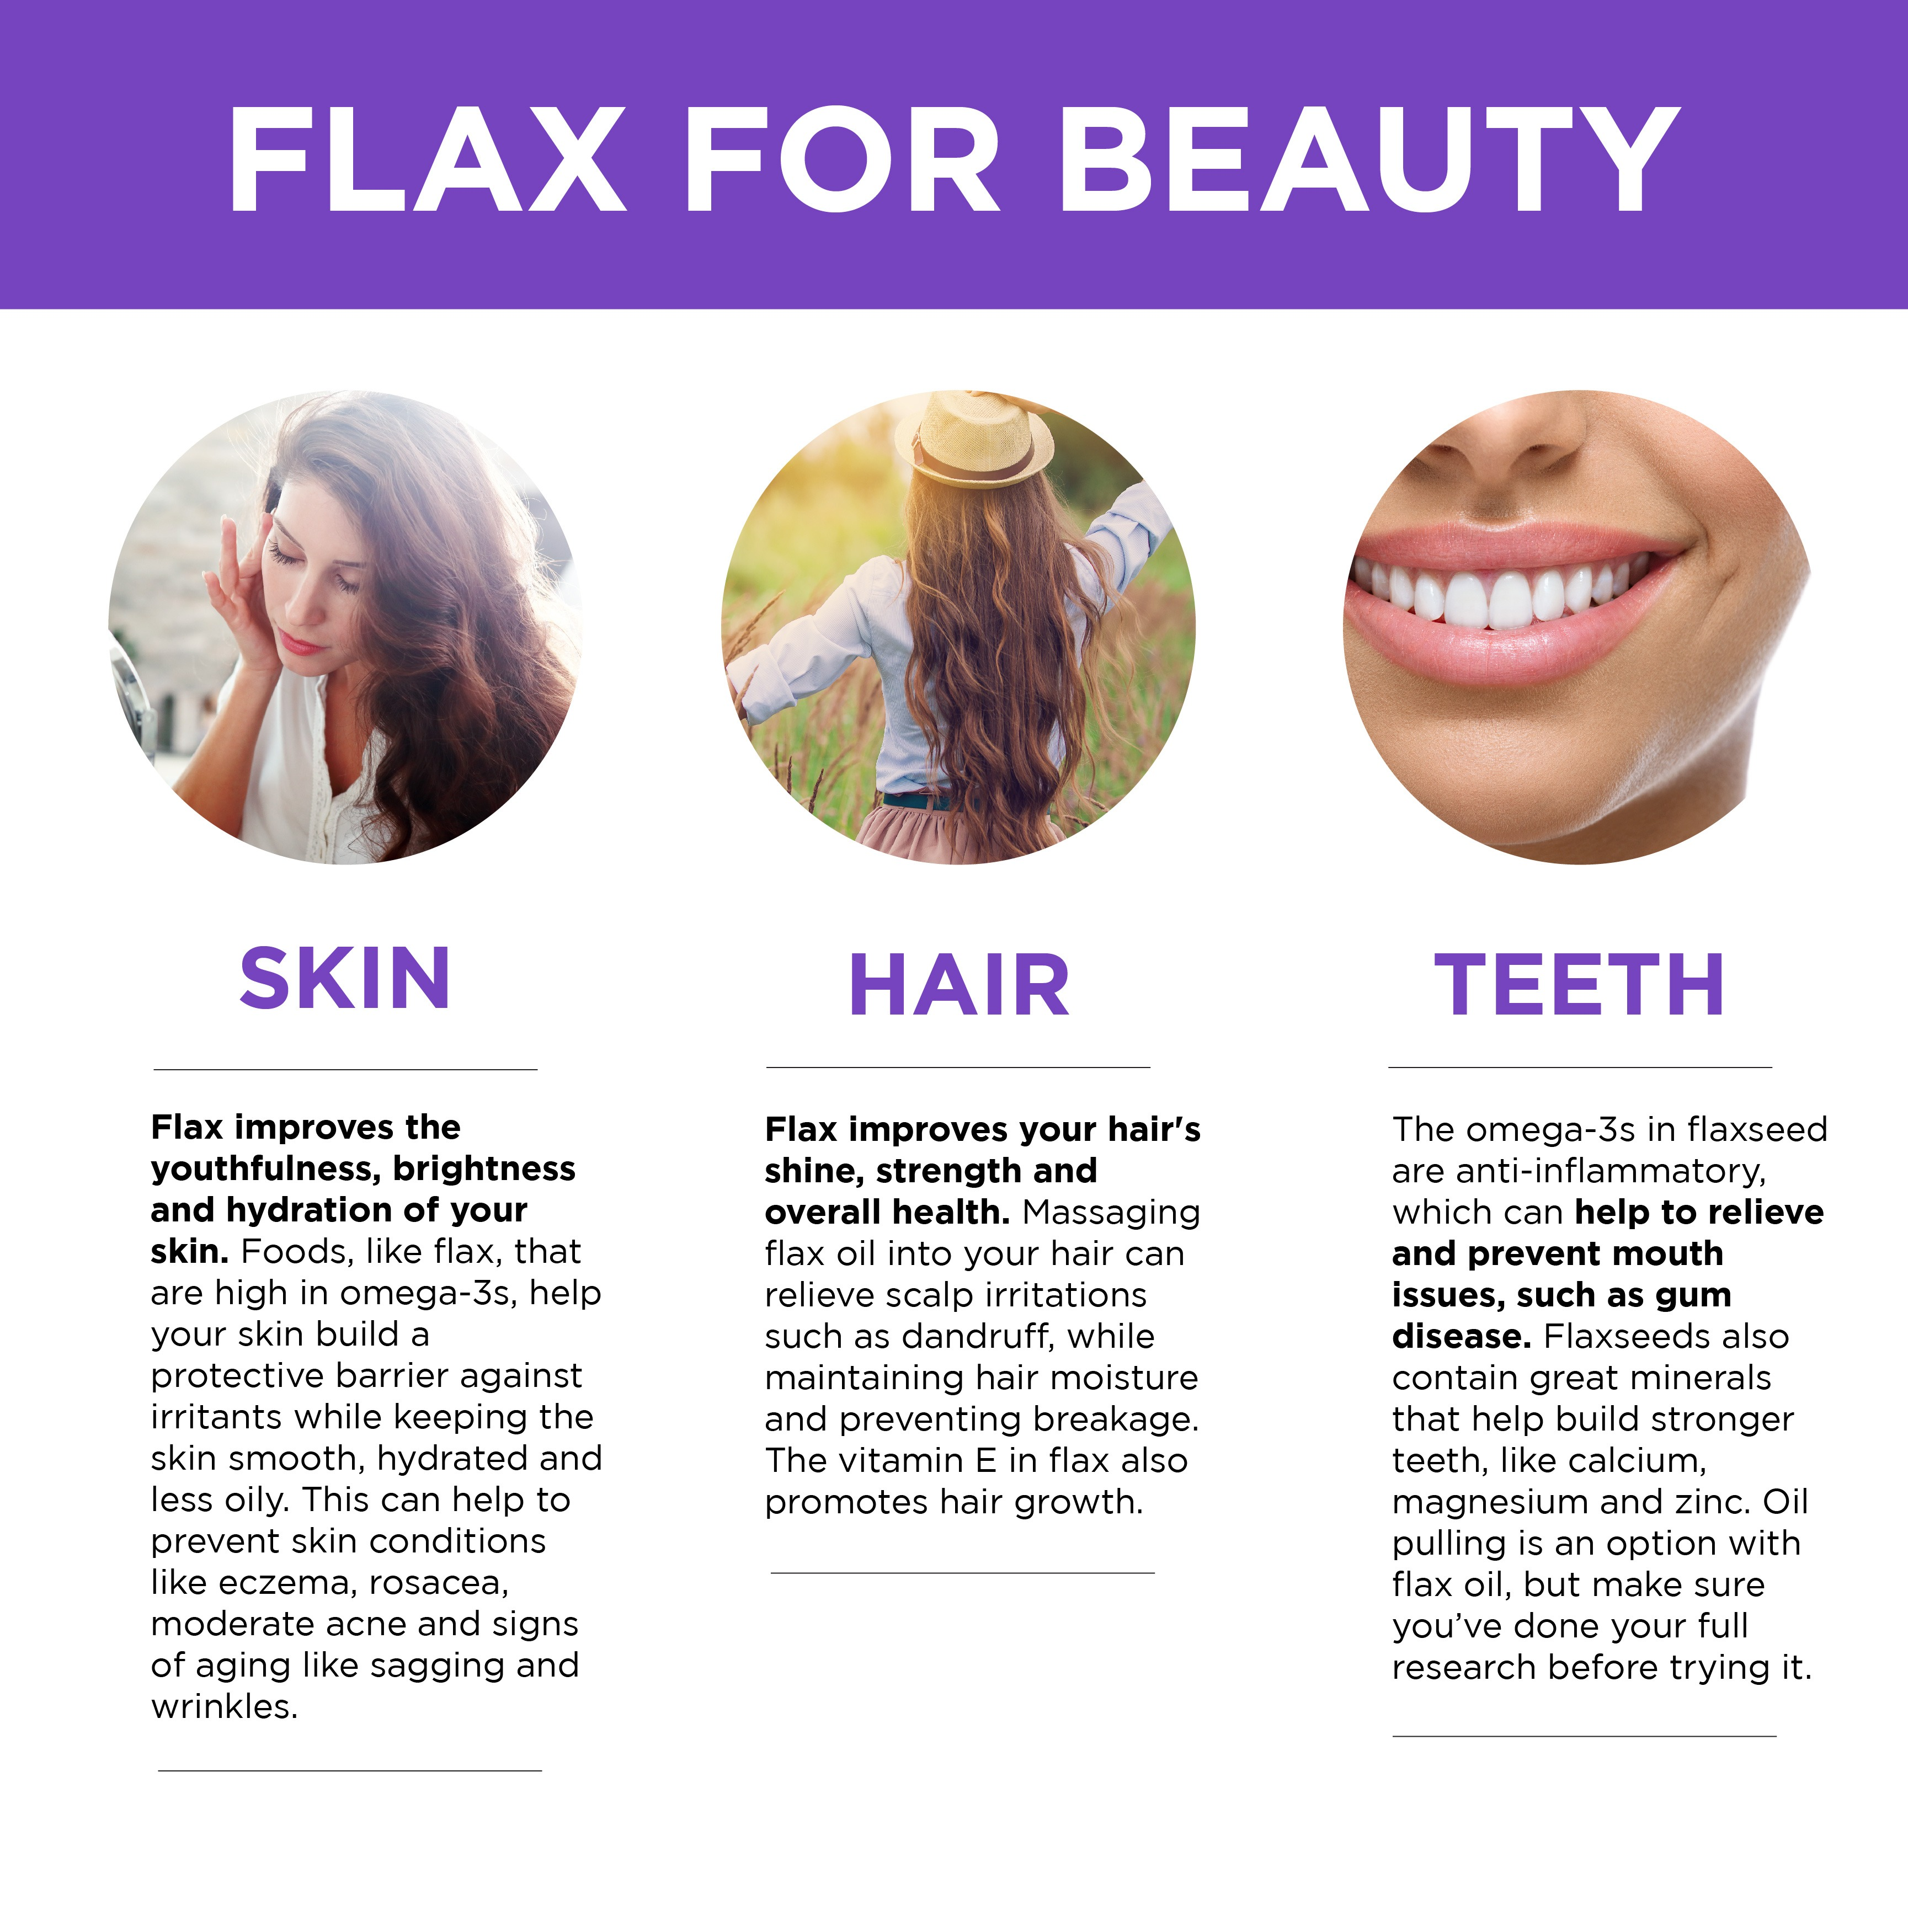 Flax for Beauty